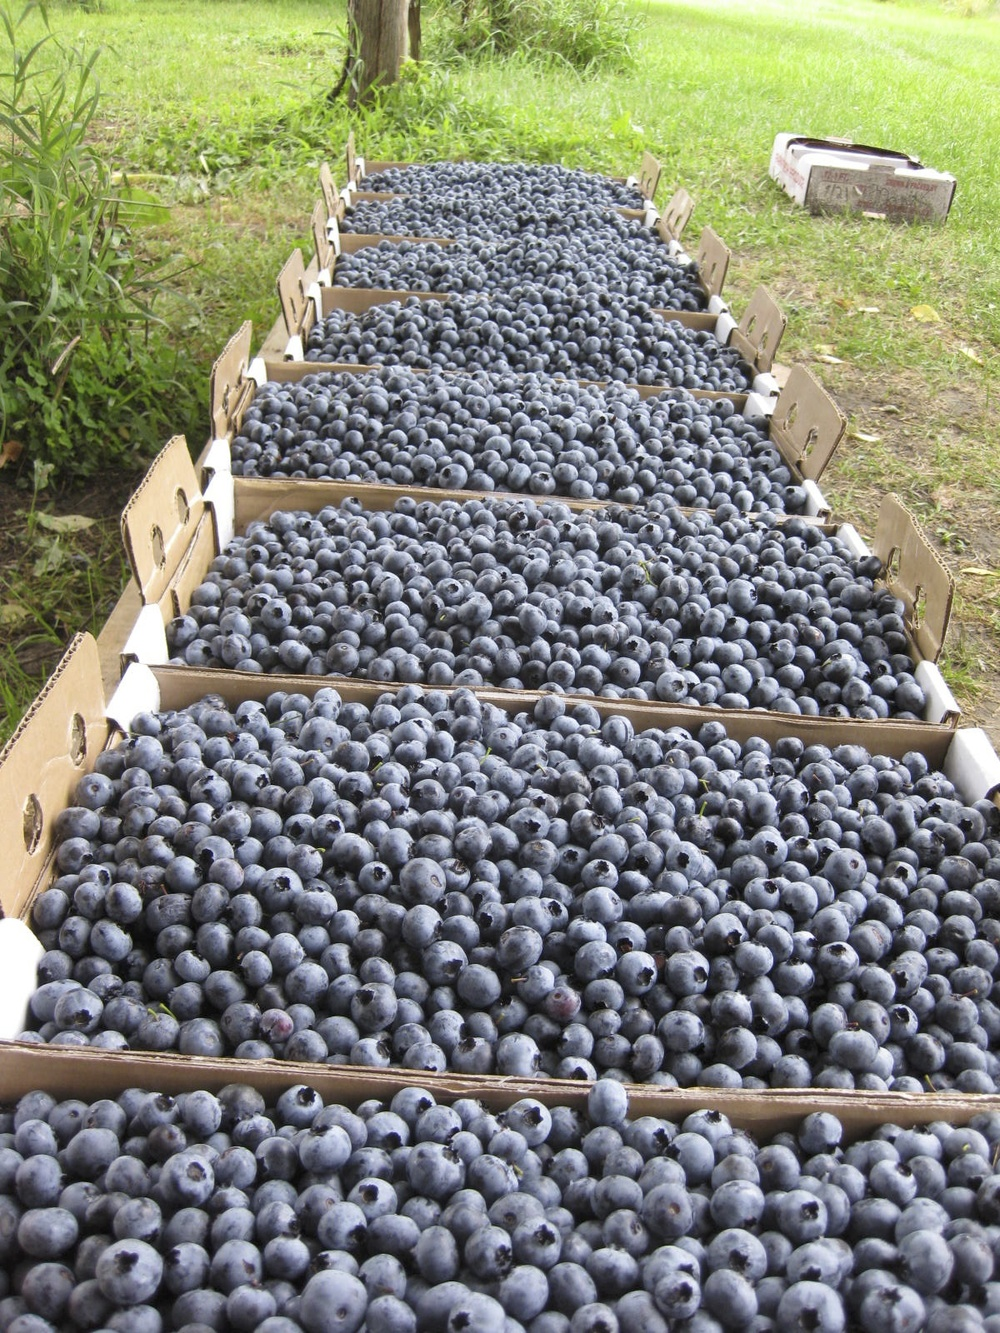 flats of blueberries.jpg